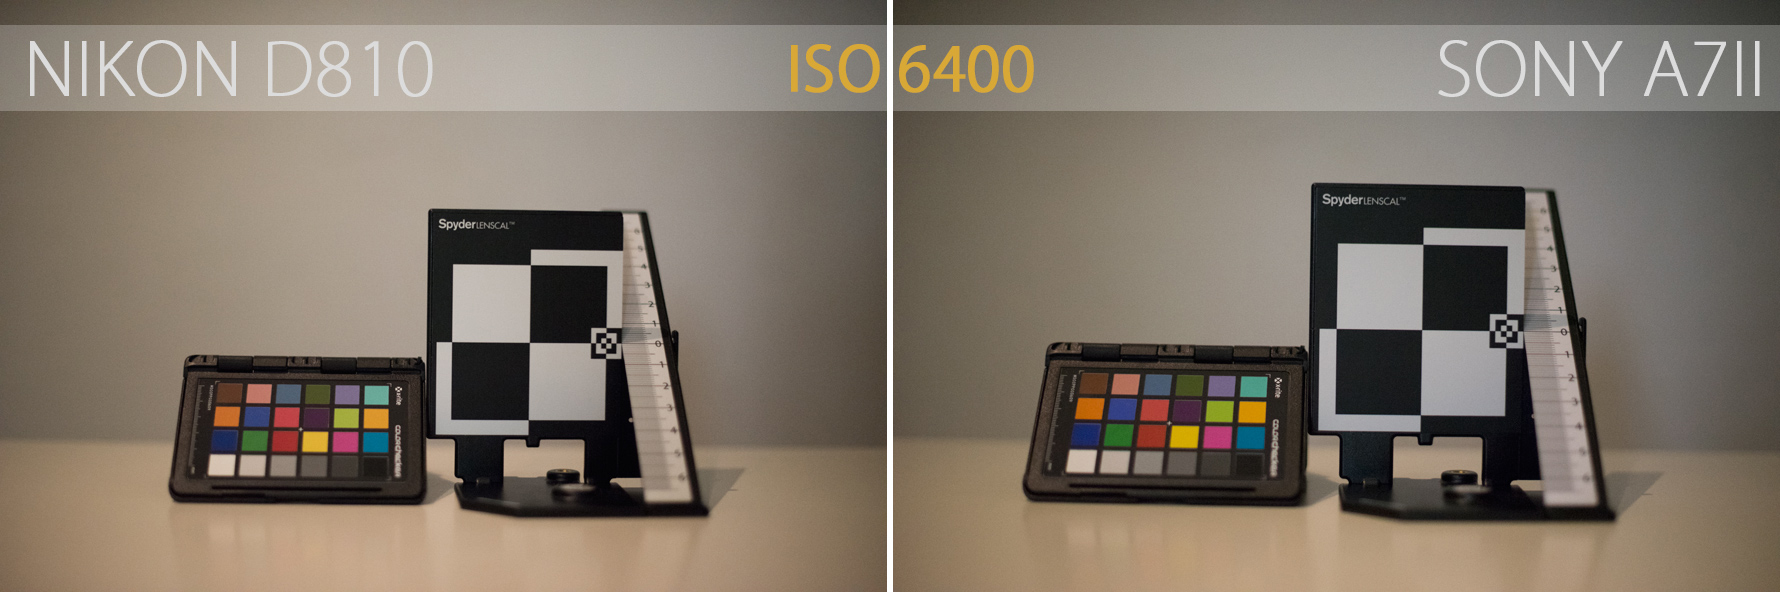 comparison between Nikon D810 and Sony a7II to ISO 6400